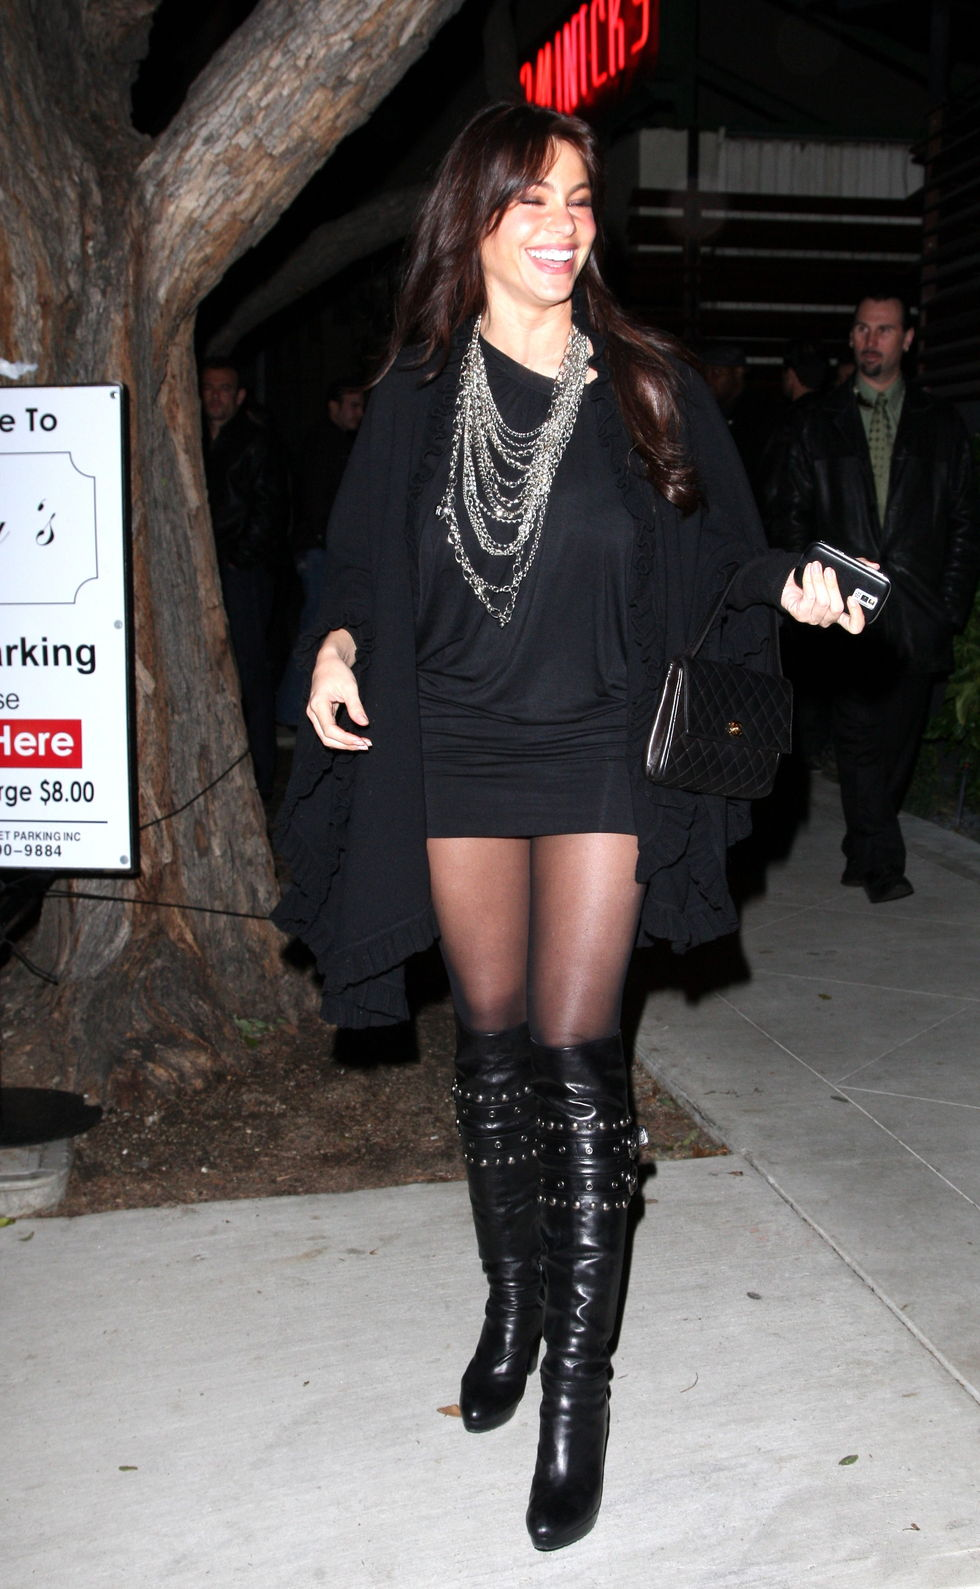 sofia-vergara-candids-at-guys-bar-in-los-angeles-01